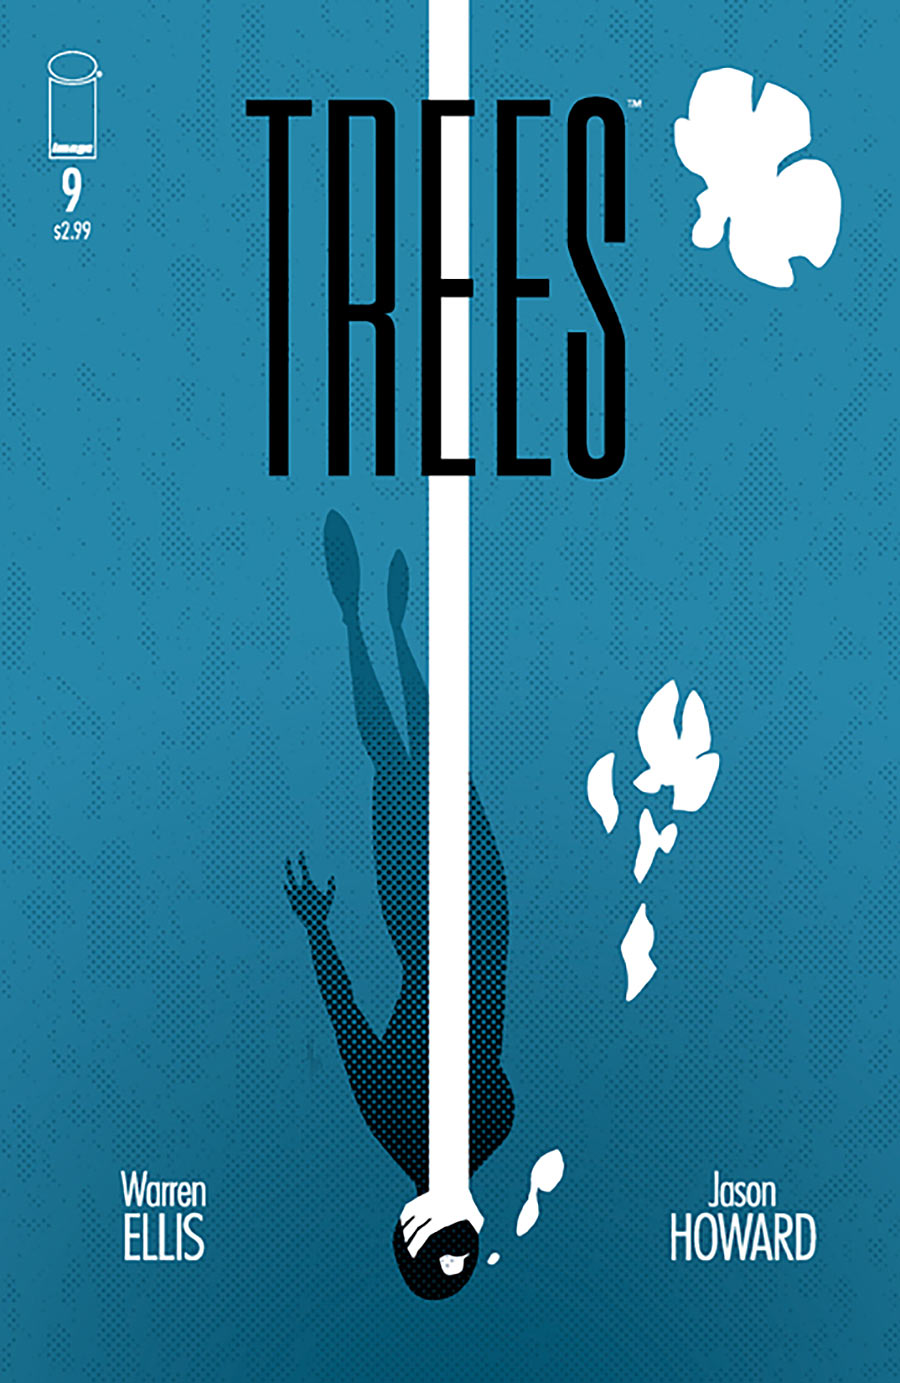 Trees09-Cover-63a02